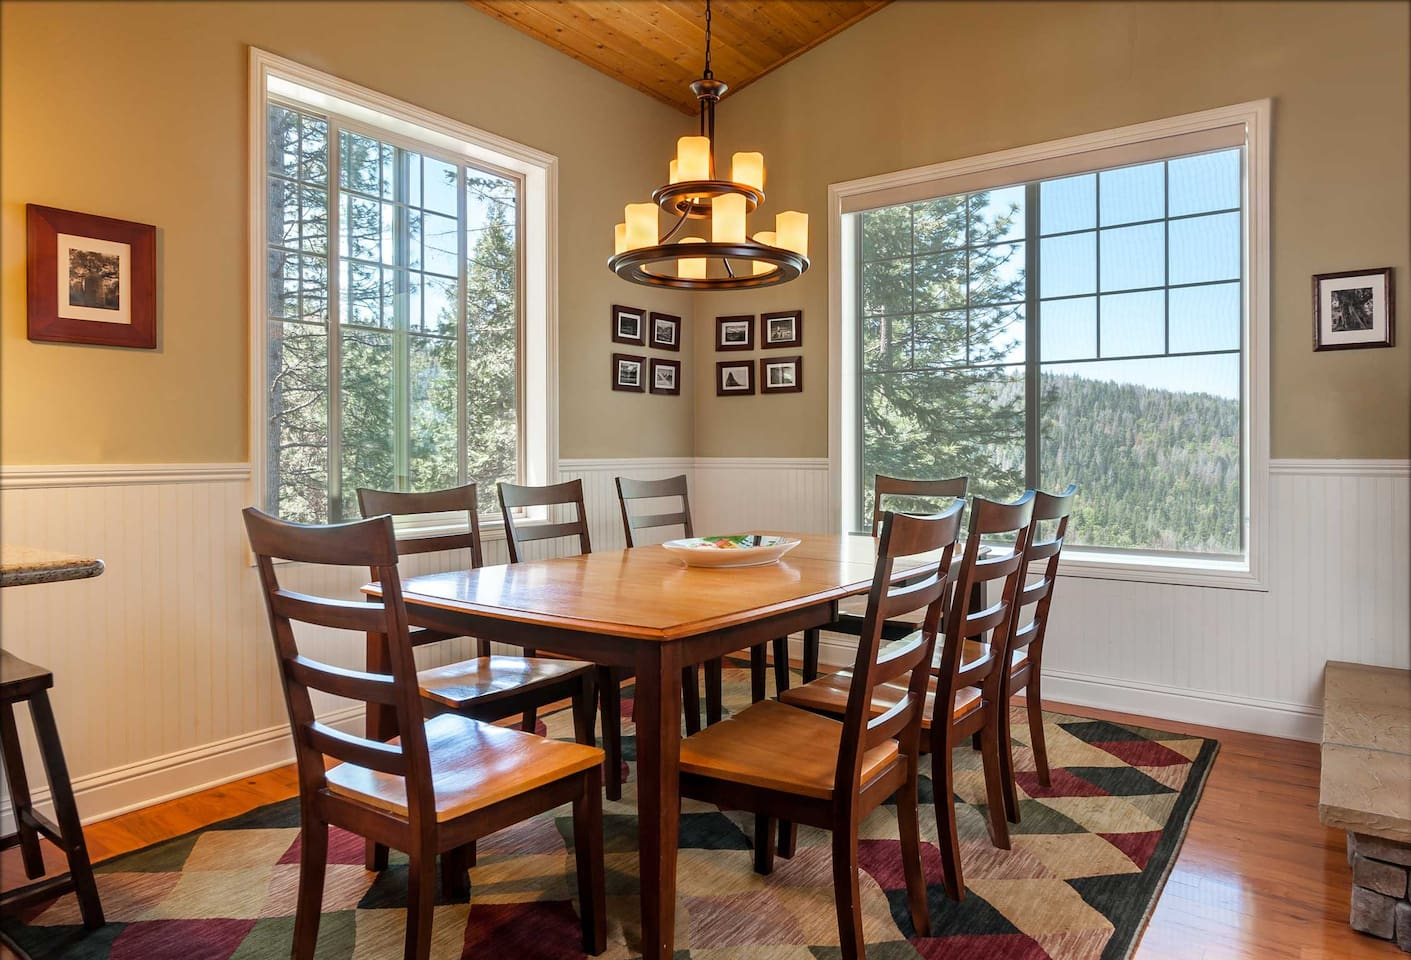 upgrade your yosemite experience houses for rent in yosemite upgrade your yosemite experience houses for rent in yosemite national park california united states